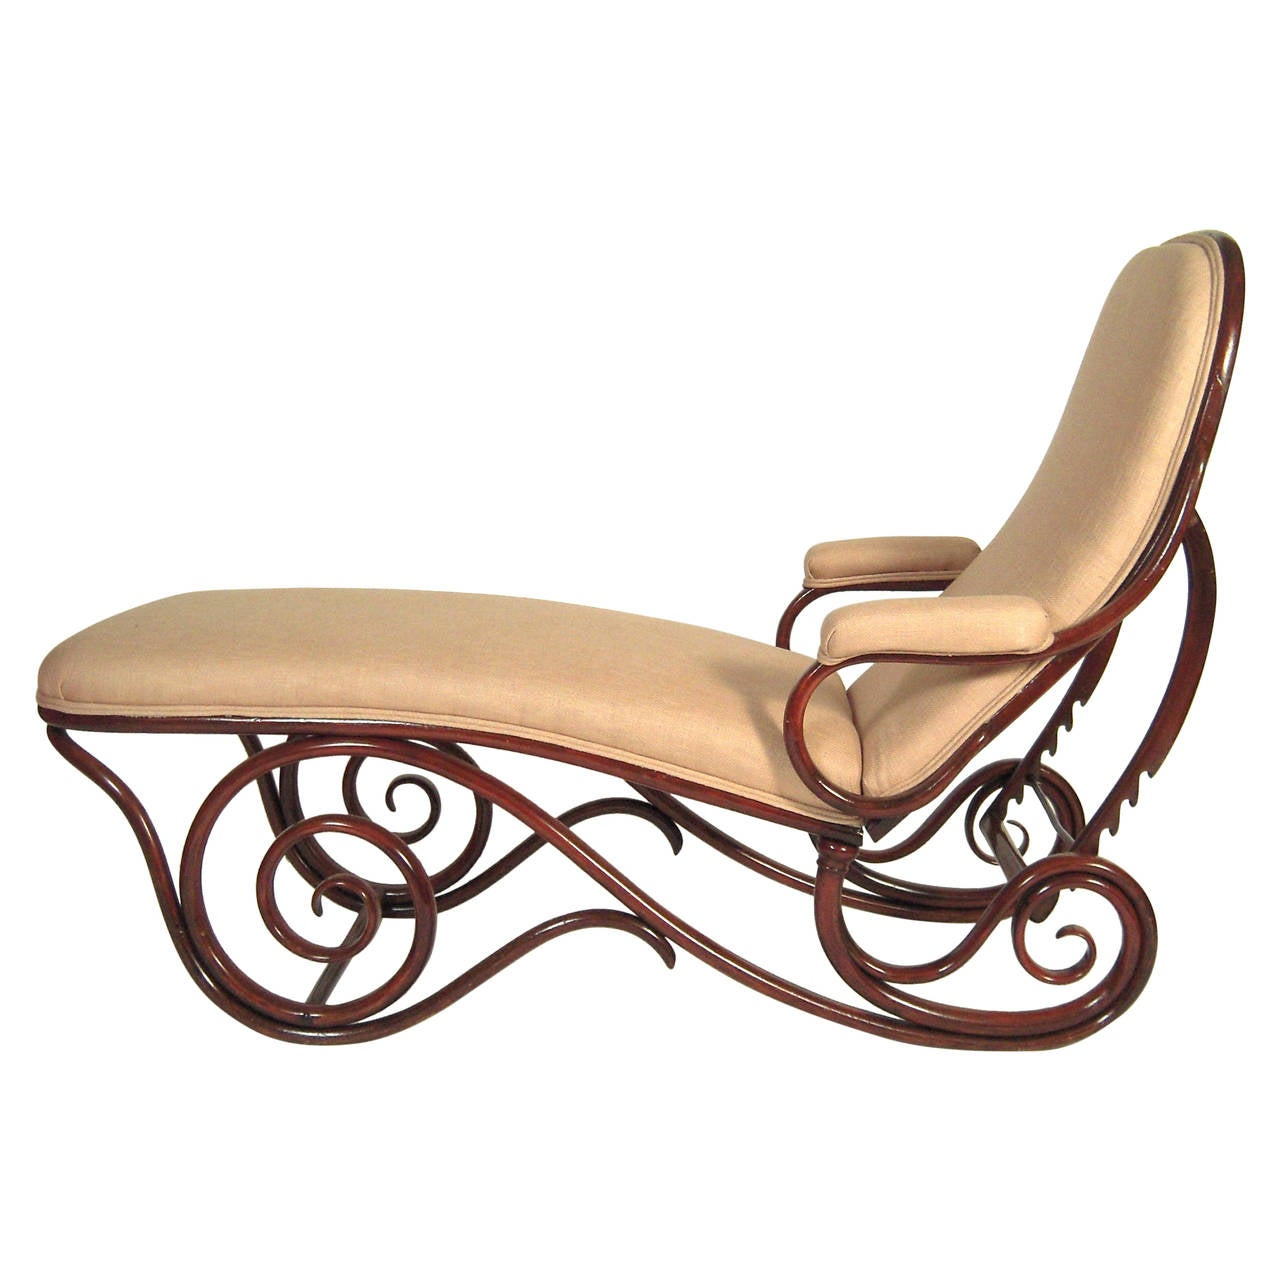 Thonet adjustable bentwood chaise longue at 1stdibs for Chaise bentwood